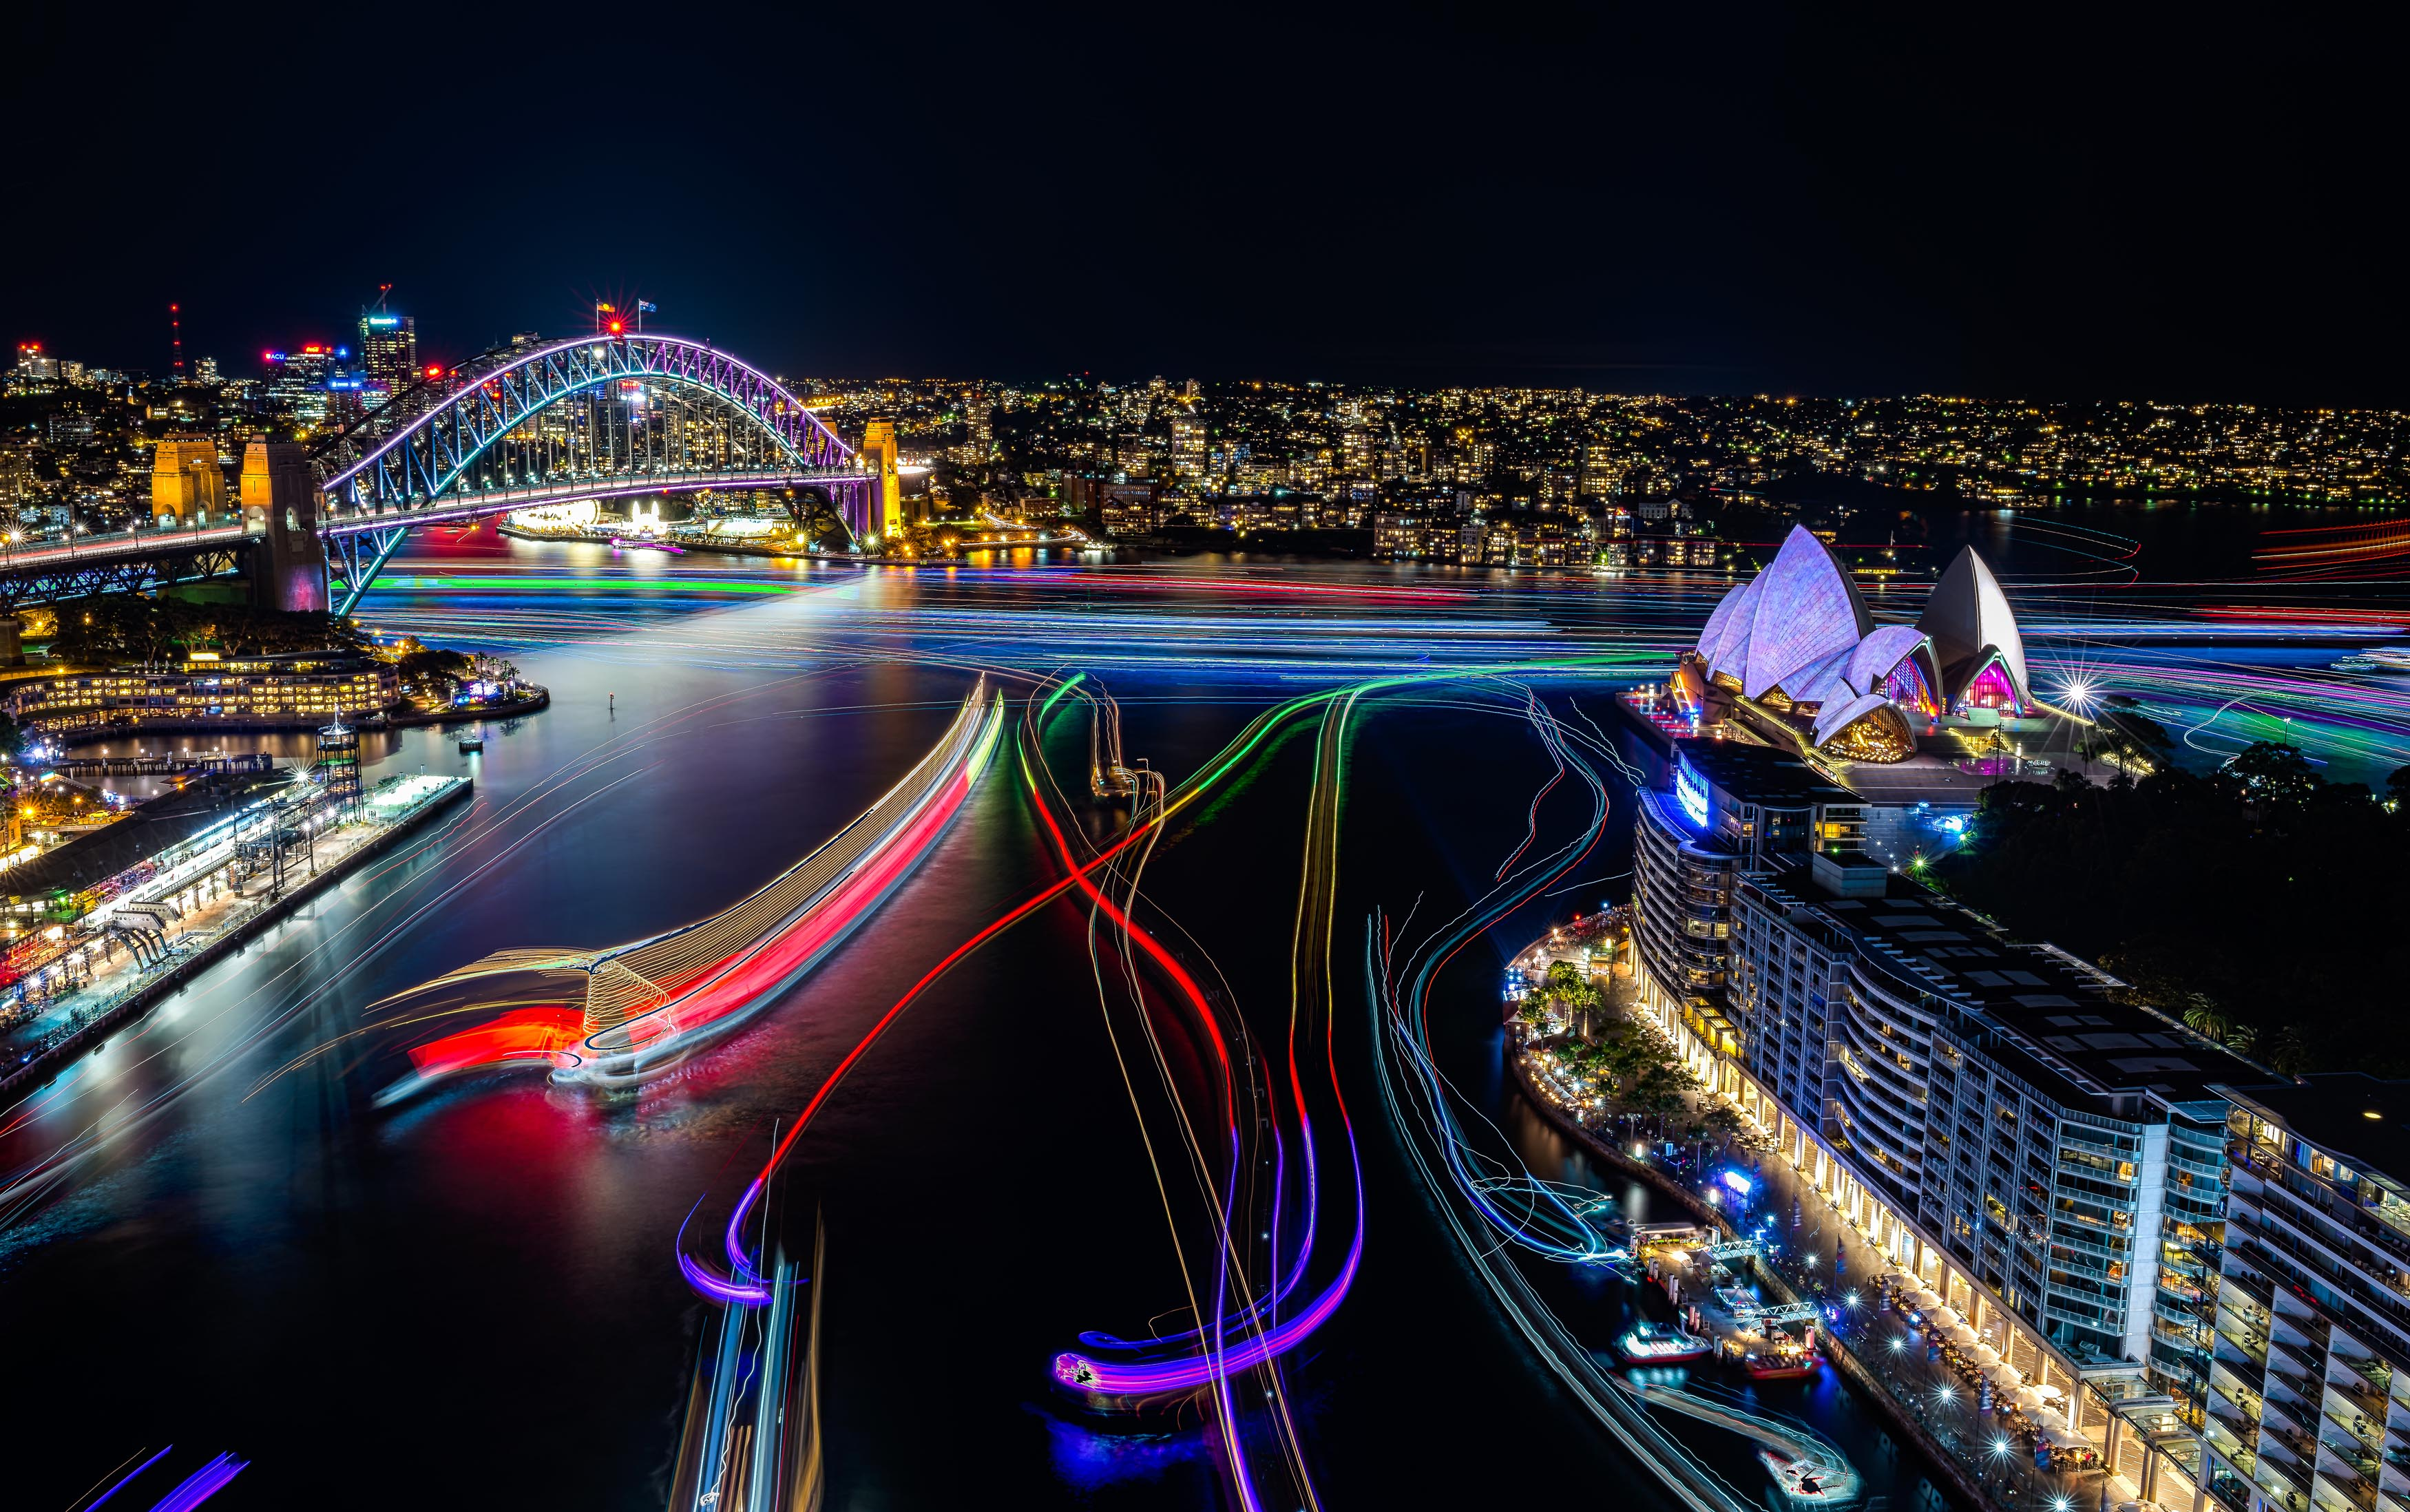 Dreamscape creator for Vivid Sydney 2017 breaks global record - Alvinology